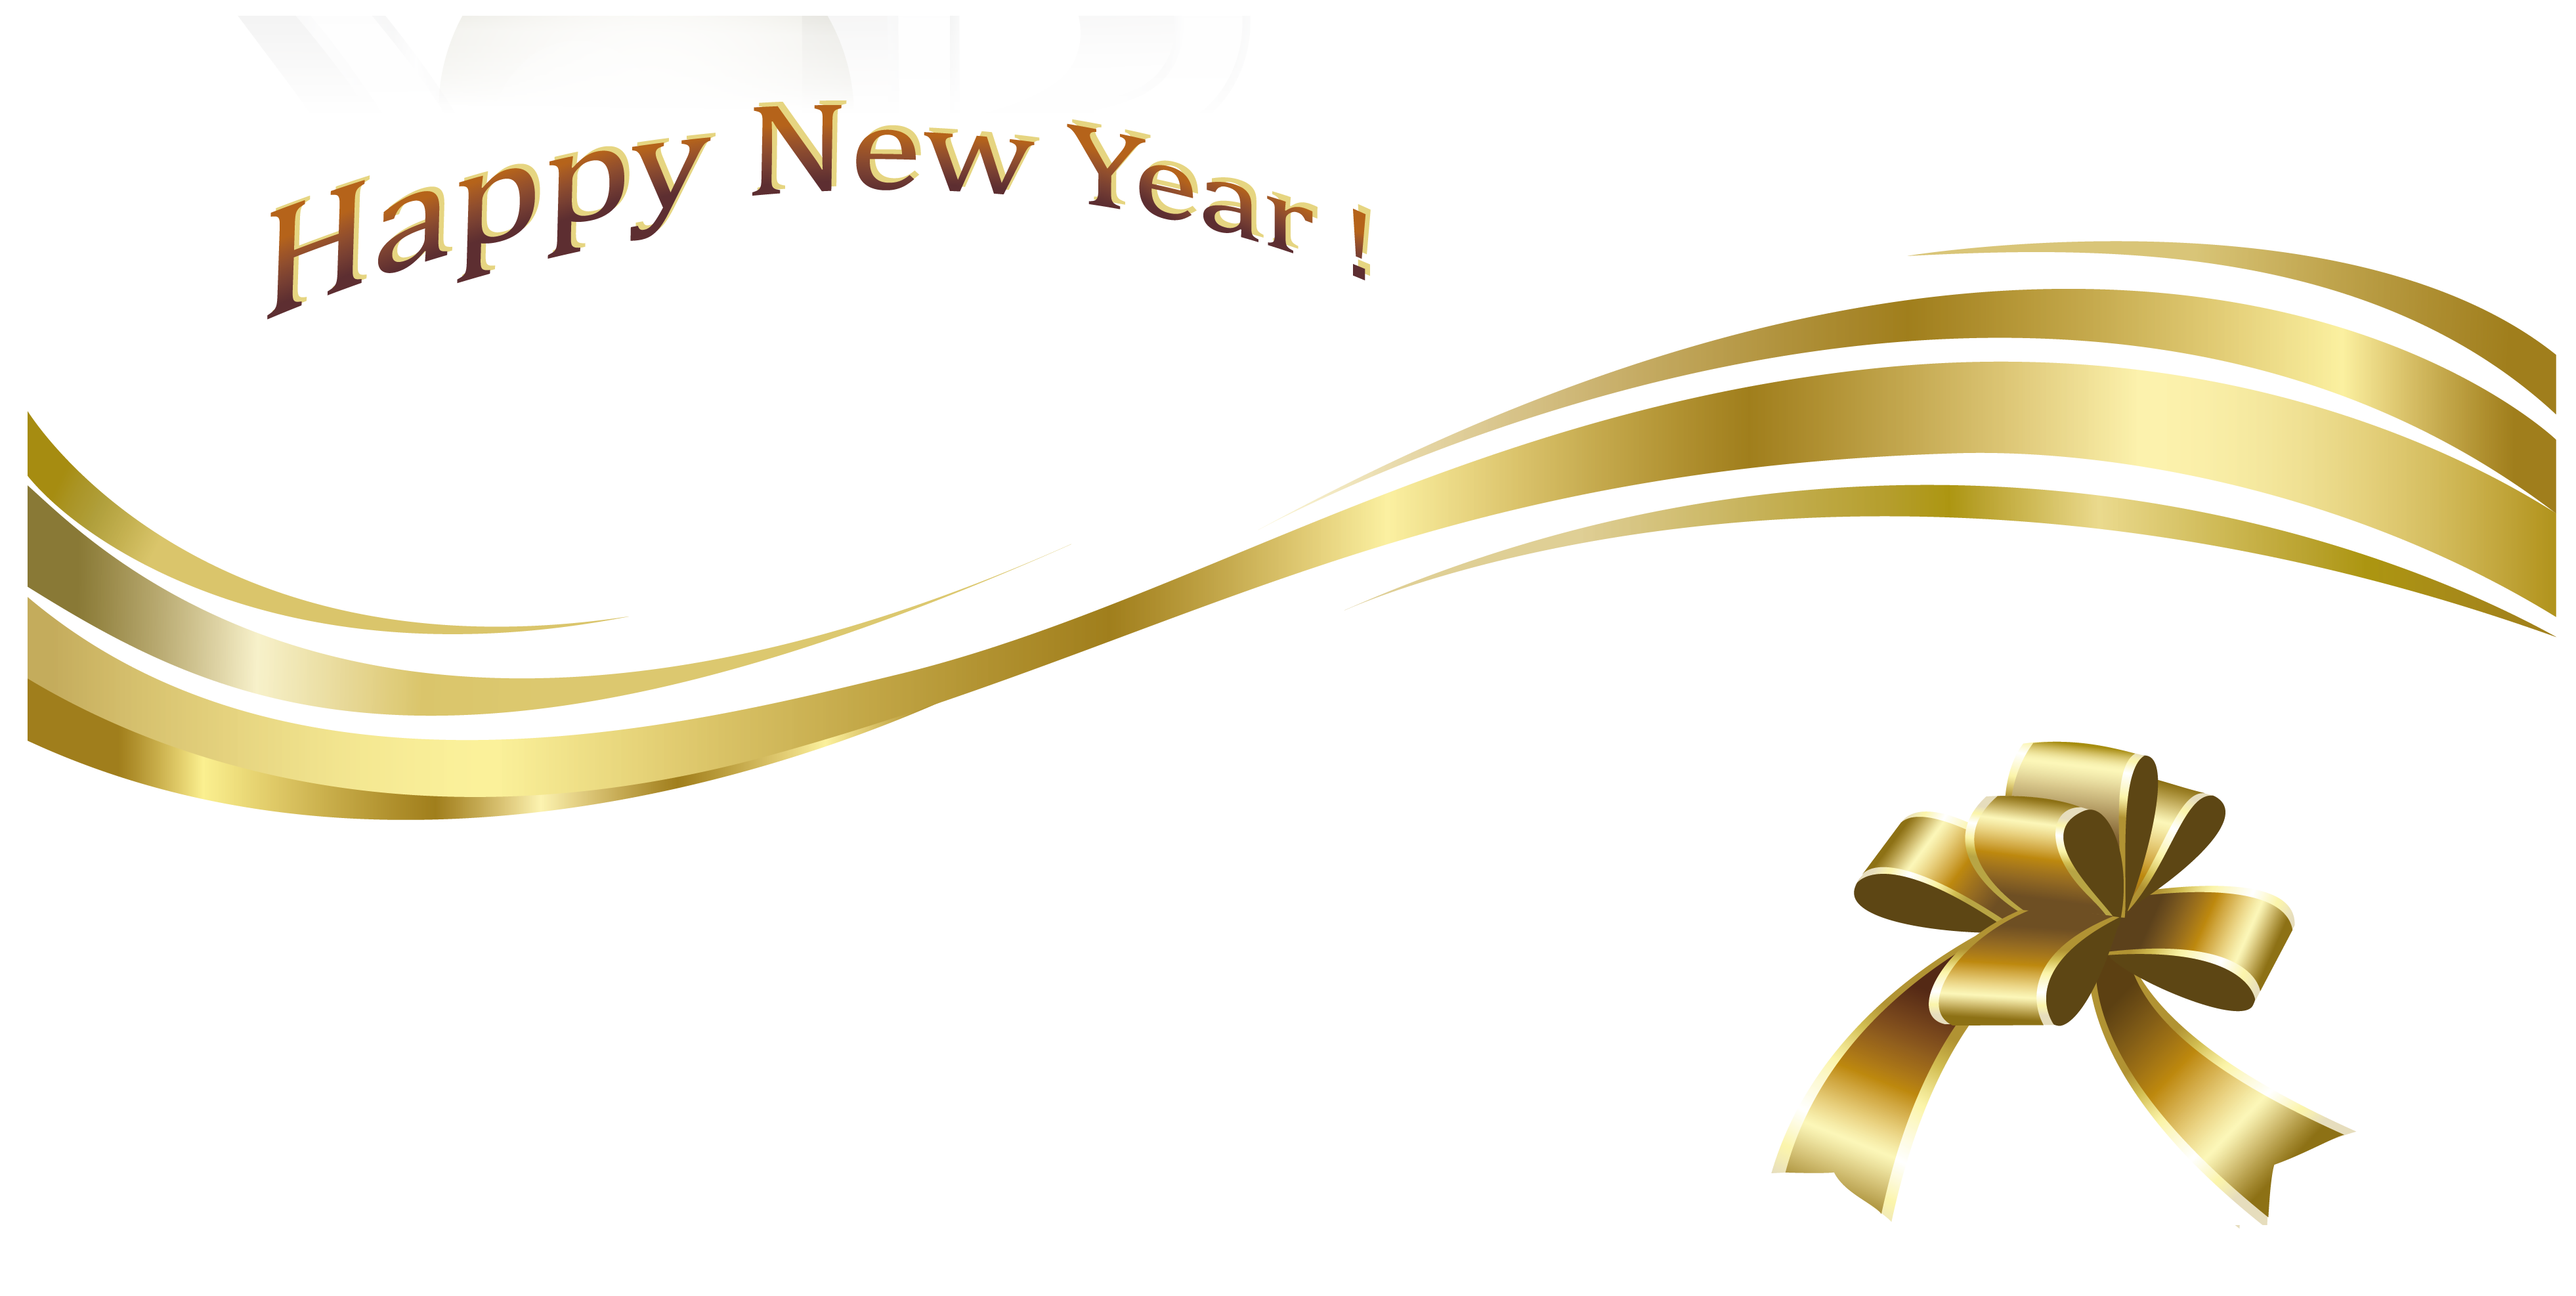 New year clip art png. Happy gold text and